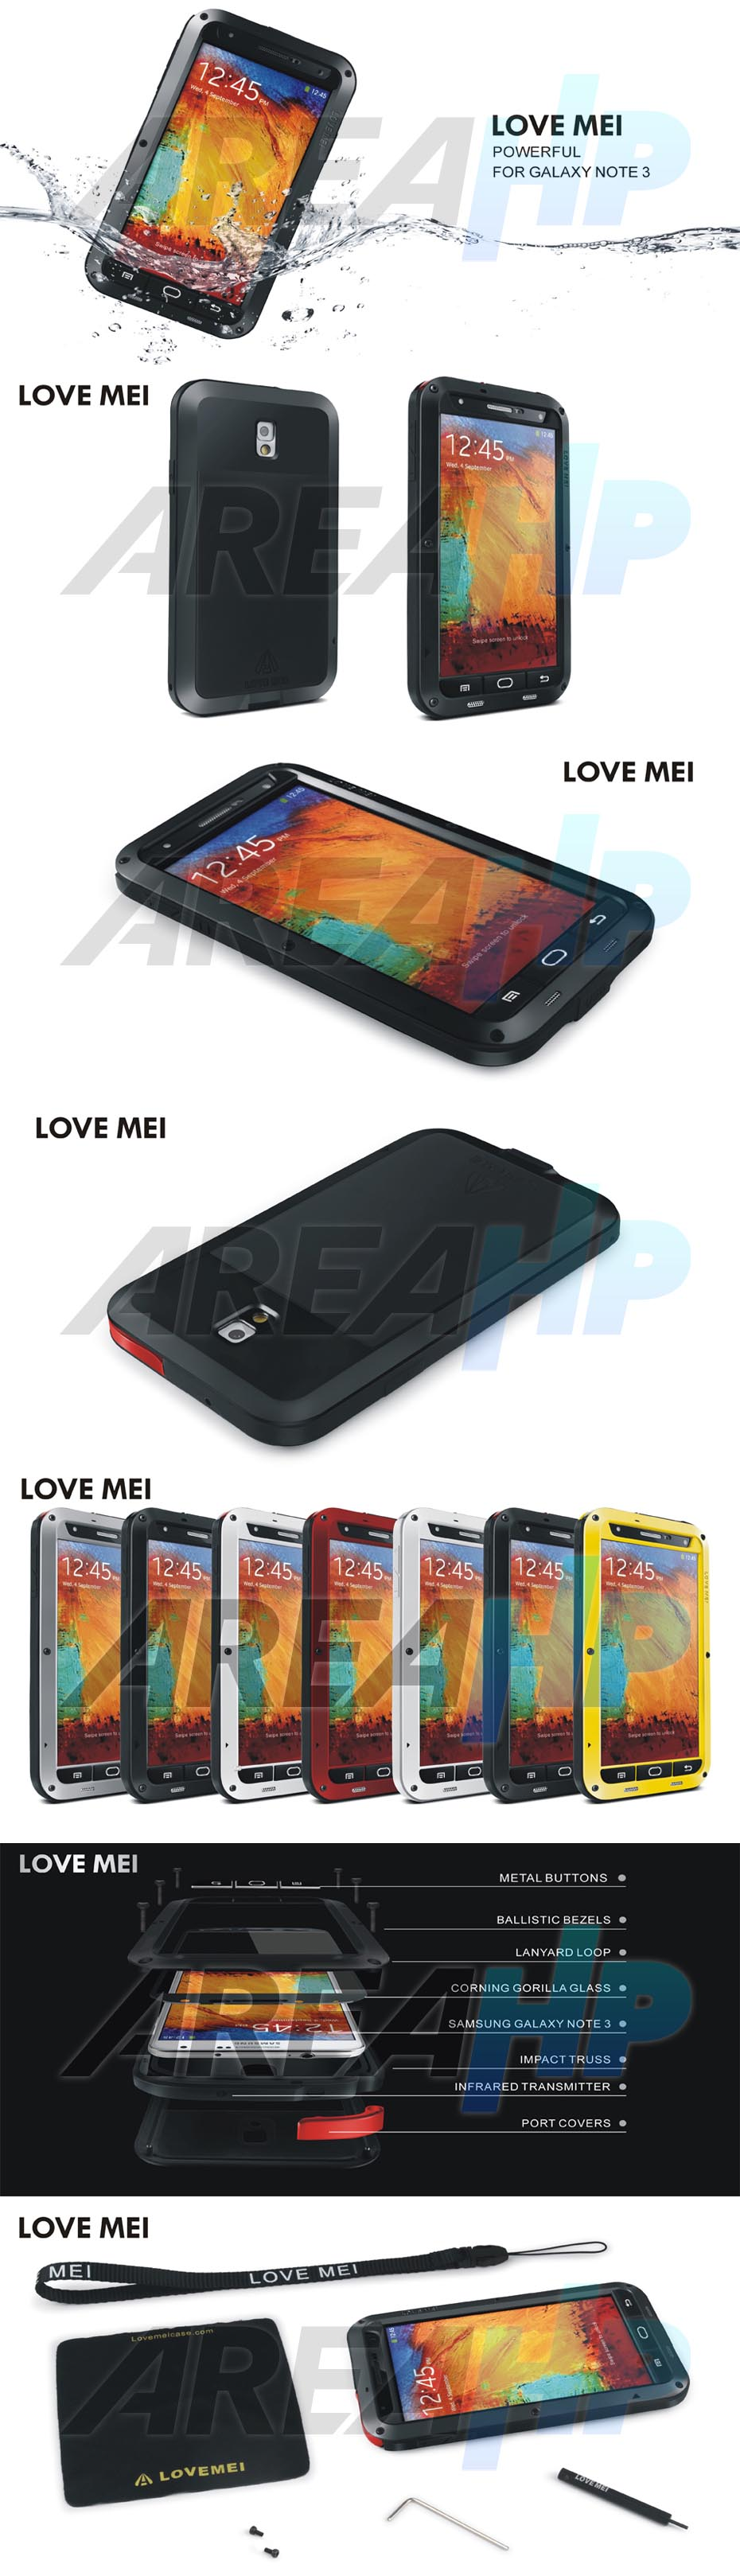 Love Mei Powerful Case for Samsung Note3 N9000 Overview